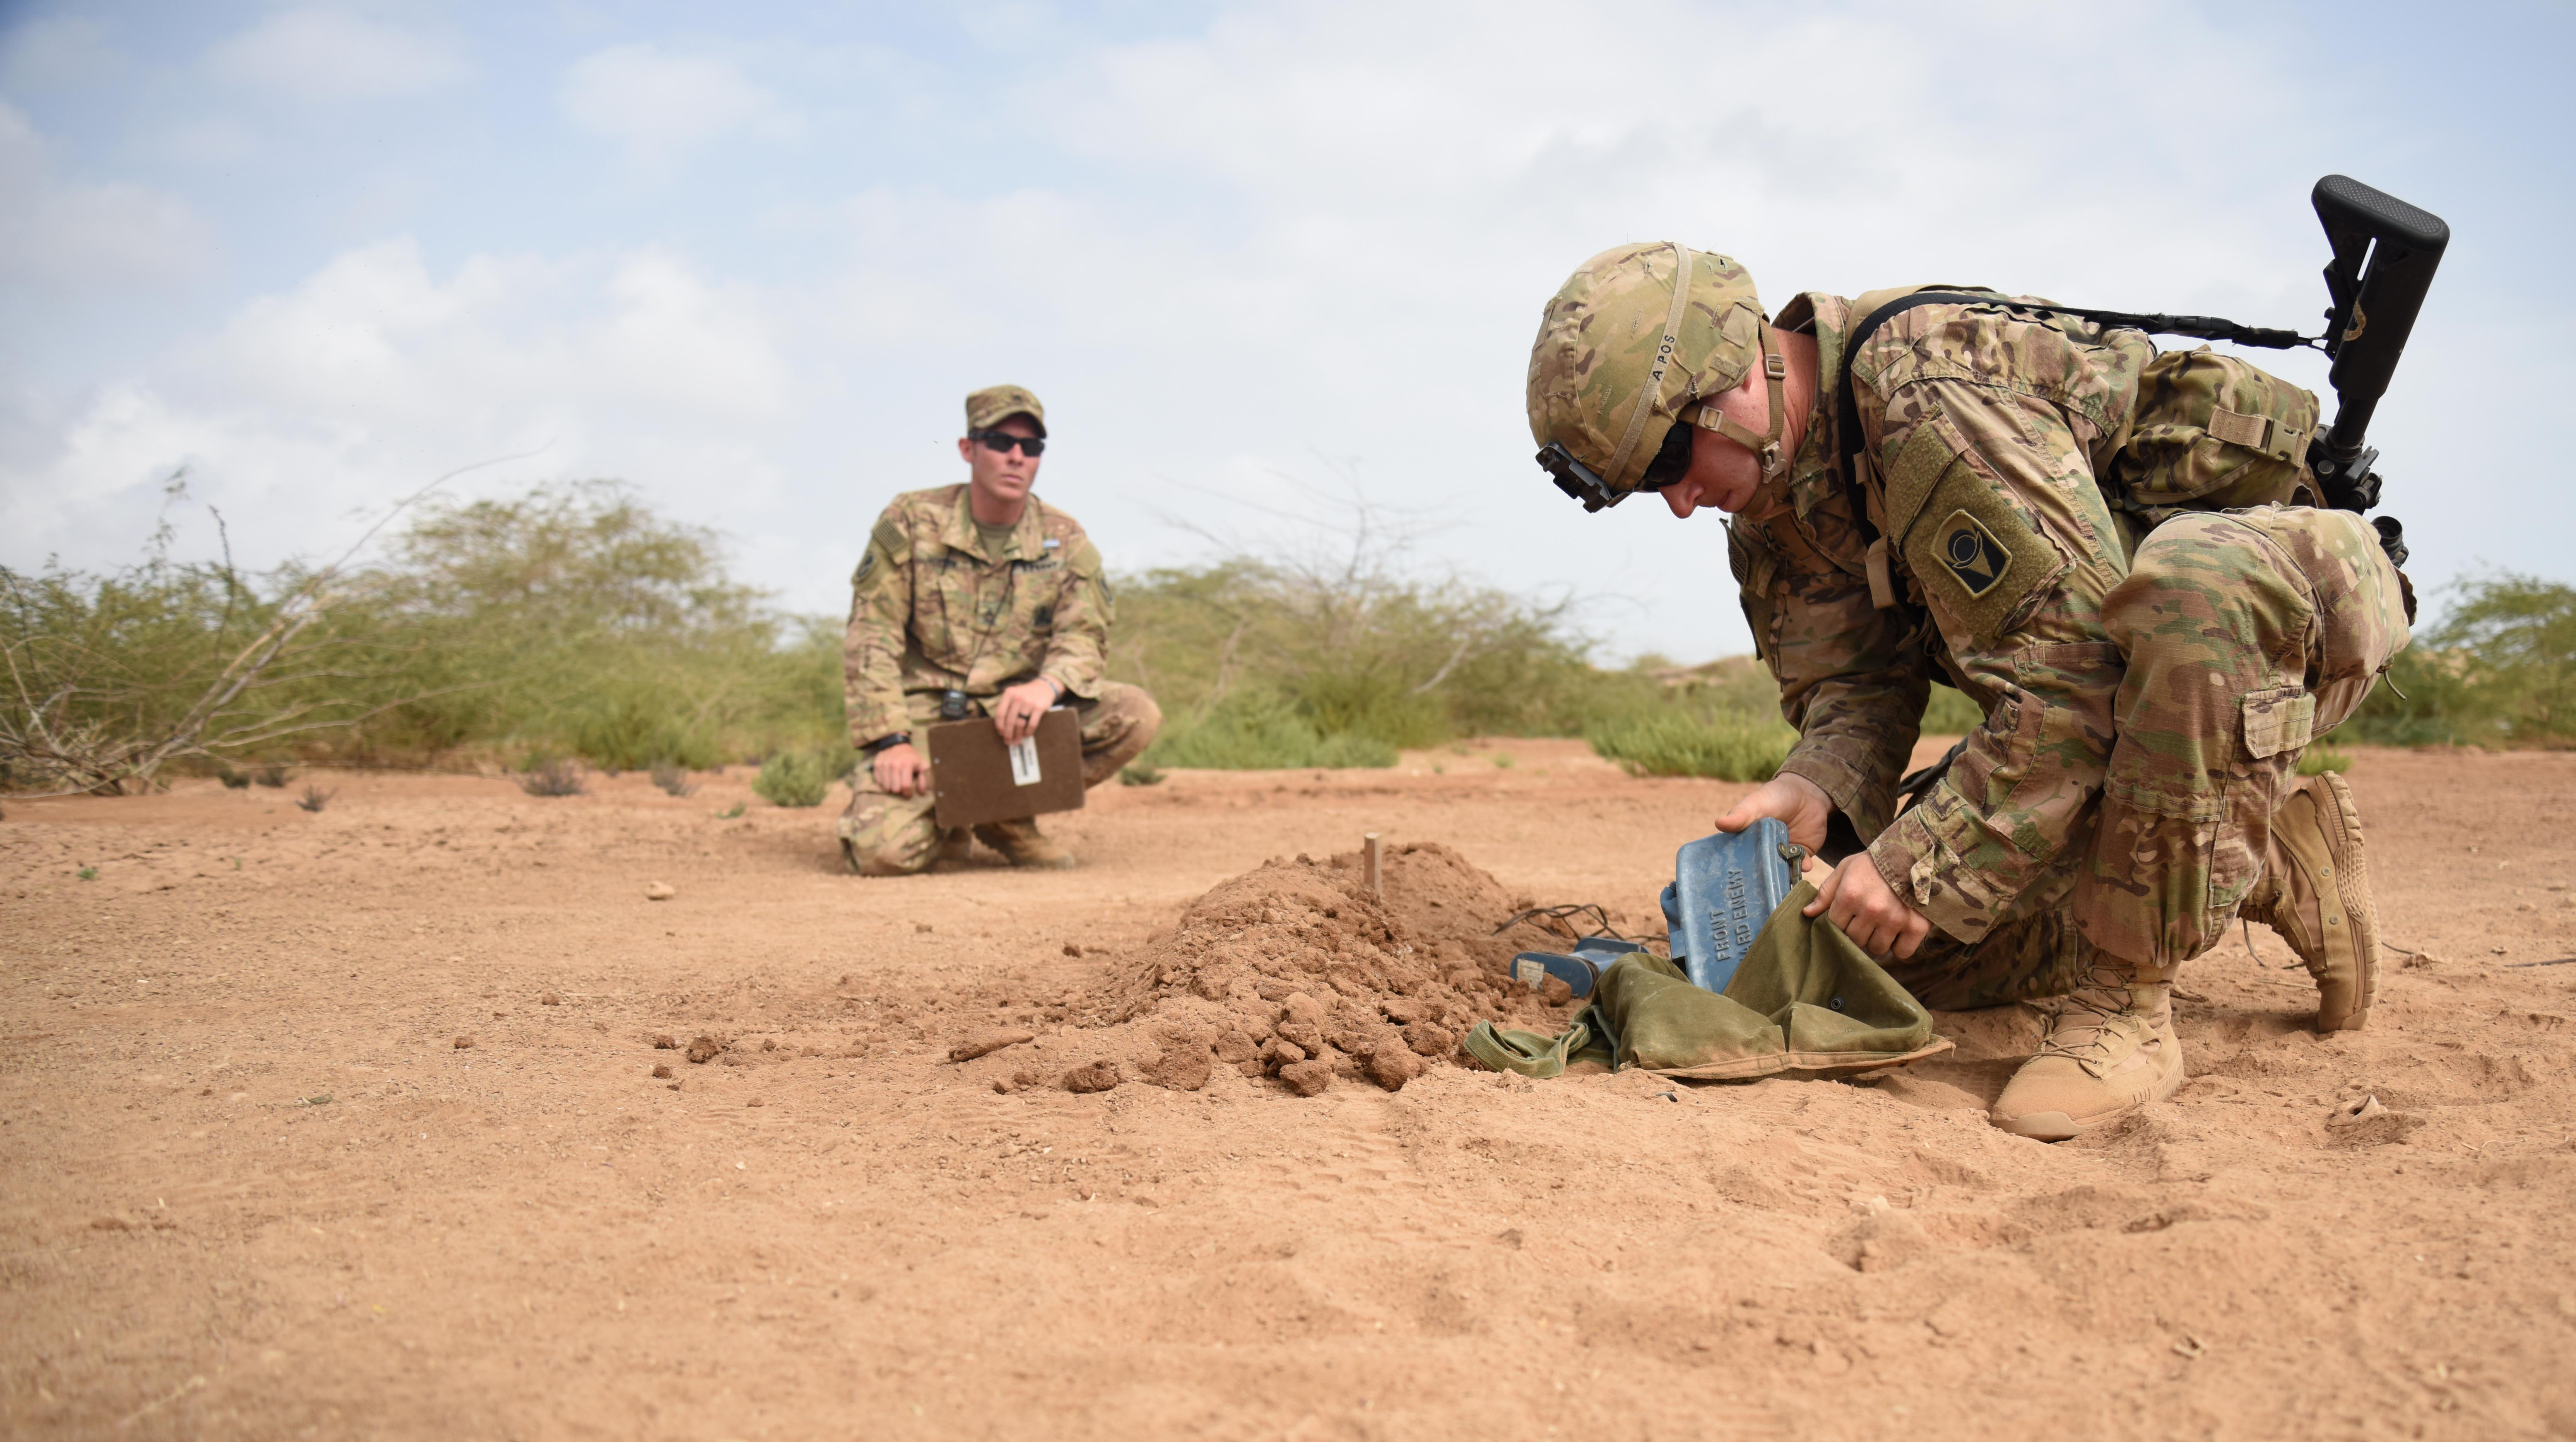 U.S. Army Spc. Jeremy Cicio, Expert Infantry Badge candidate, performs a mortar test March 29, 2016, during the weapons portion of the EIB course at Camp Lemonnier, Djibouti. The weapons portion involved a variety of systems and required proficient knowledge of preparing each weapon for use, all of which were timed. (U.S. Air Force photo by Staff Sgt. Kate Thornton)